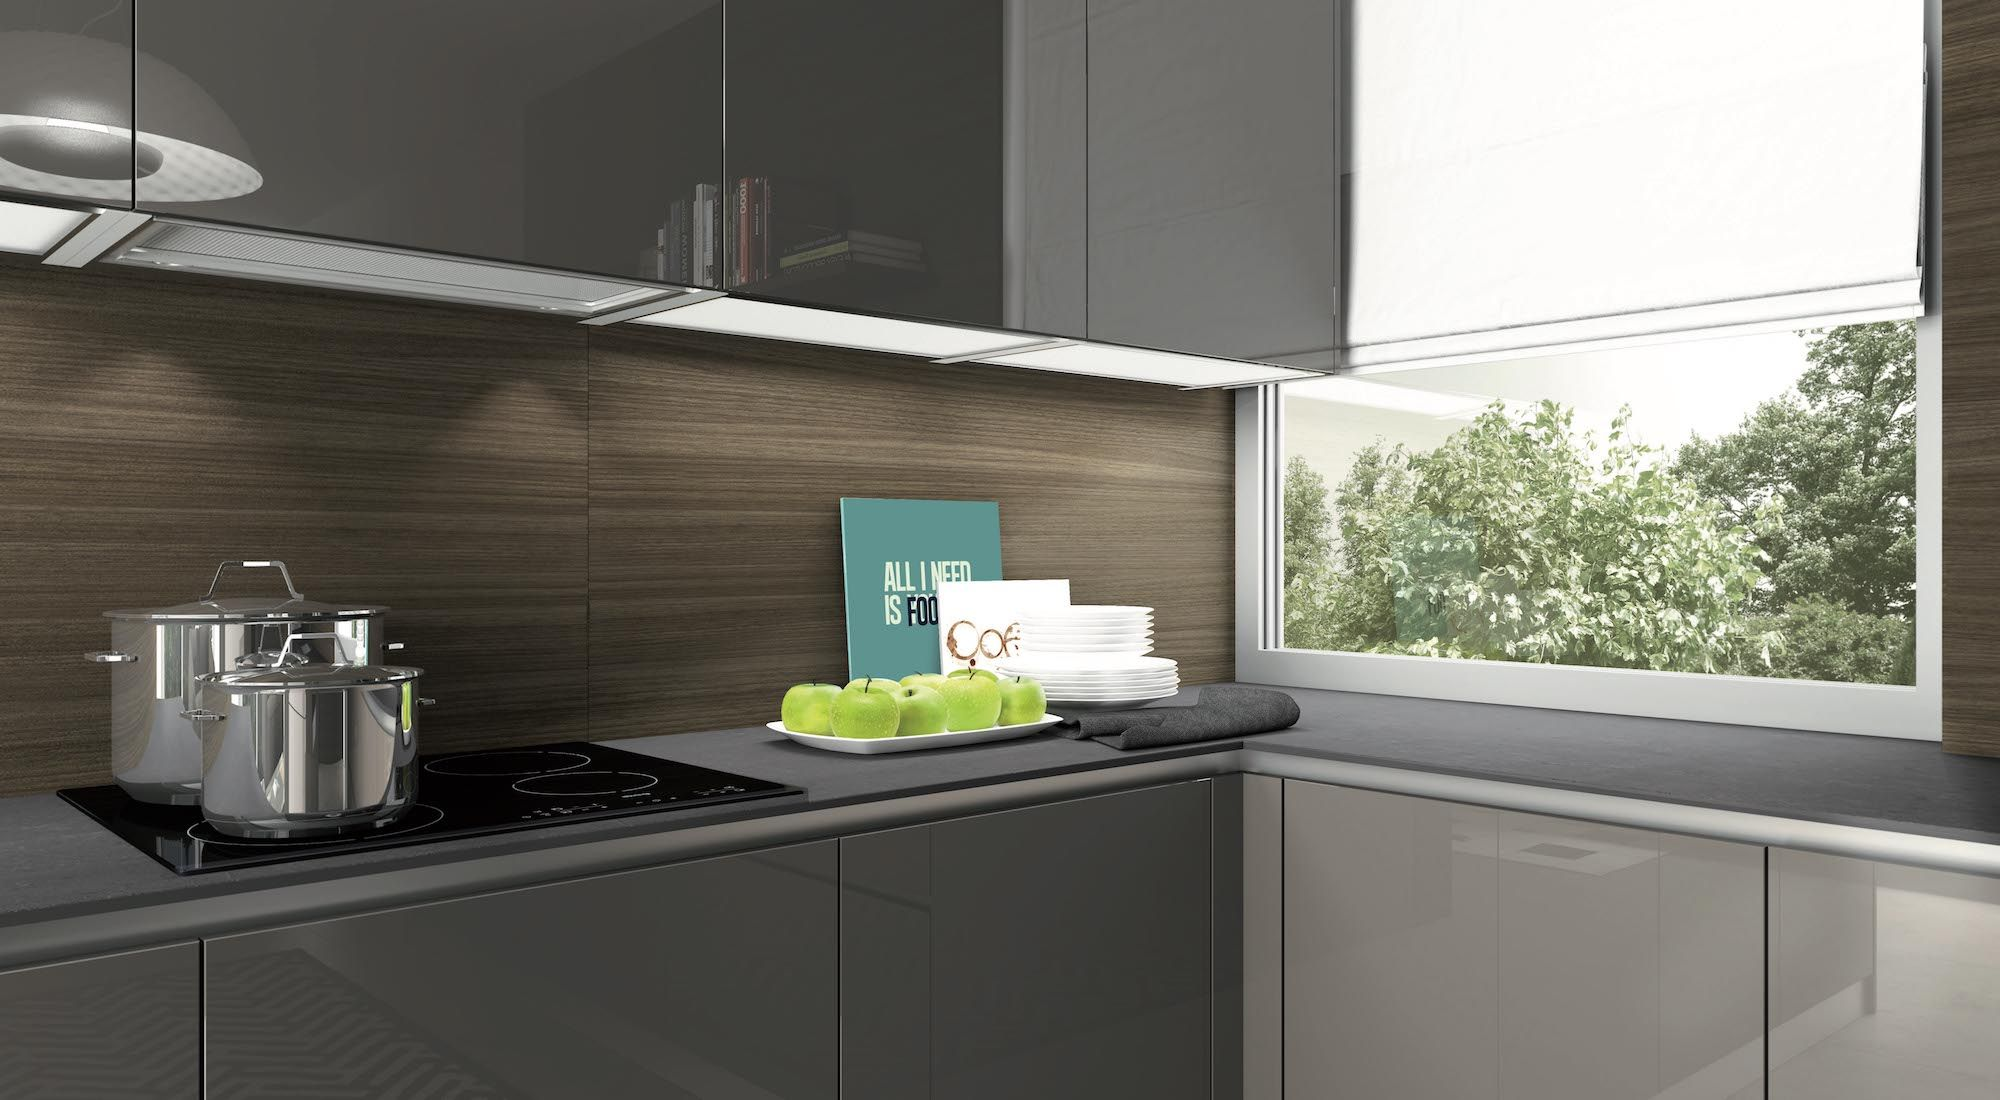 Elite modern kitchen in Mocca Star high gloss lacquered cabinets by